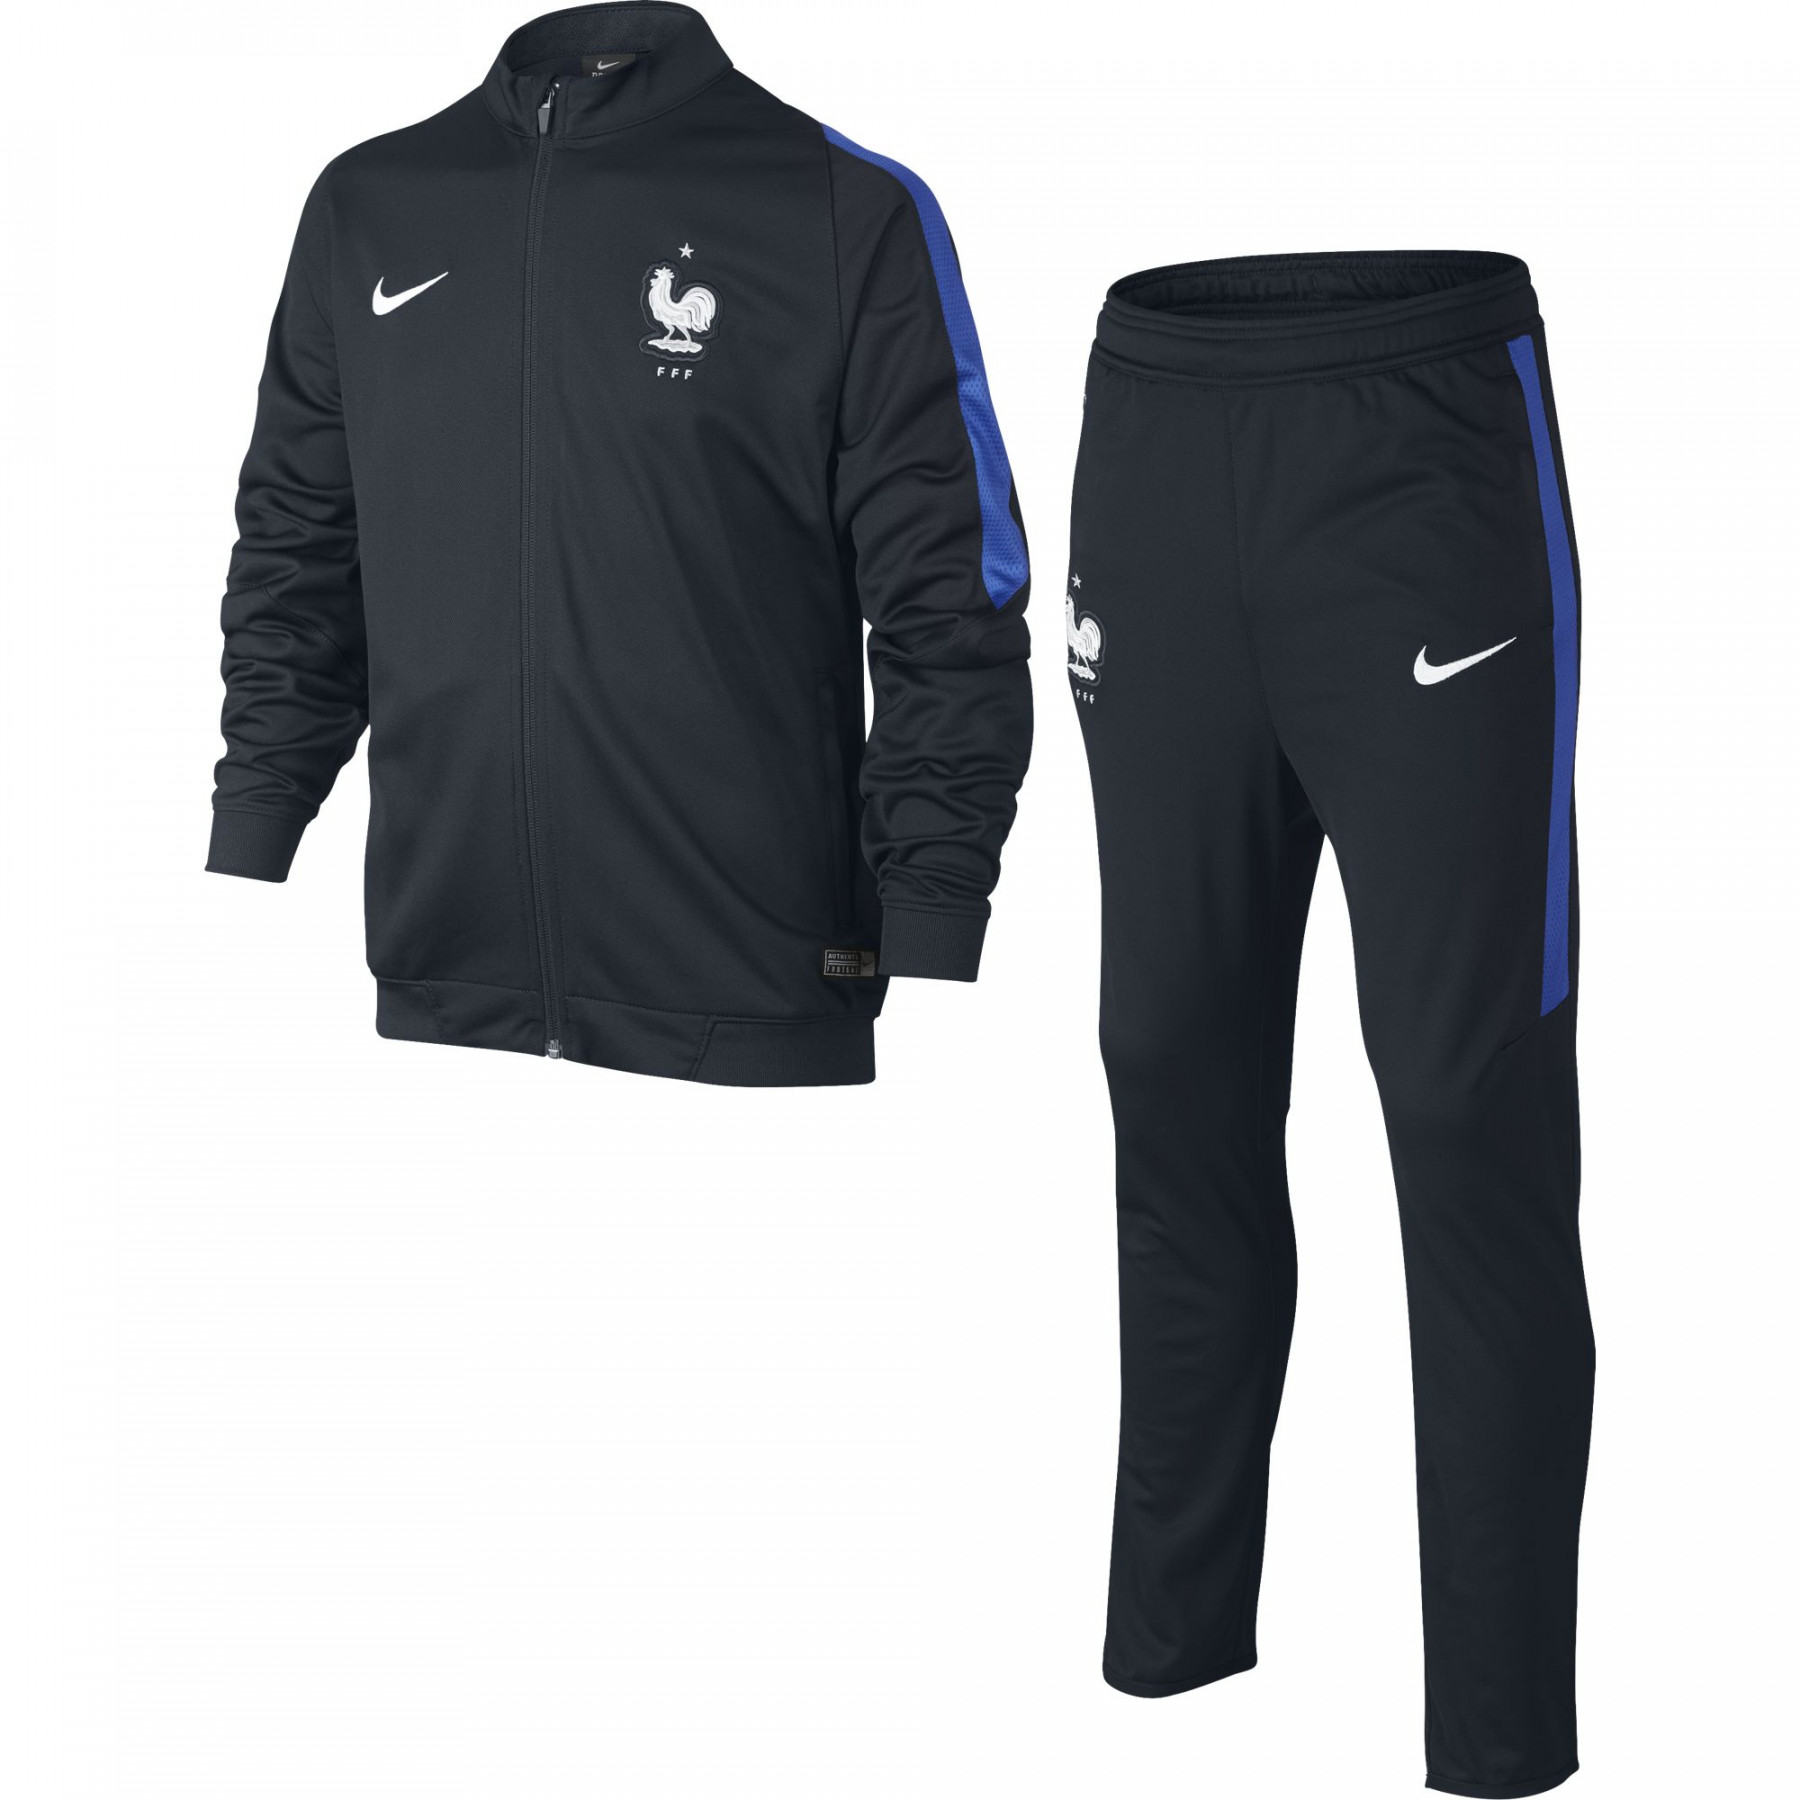 Maillot Psg Exterieur 2017 Nike Fff Survetement Jr Marine 2016 - France - Nation